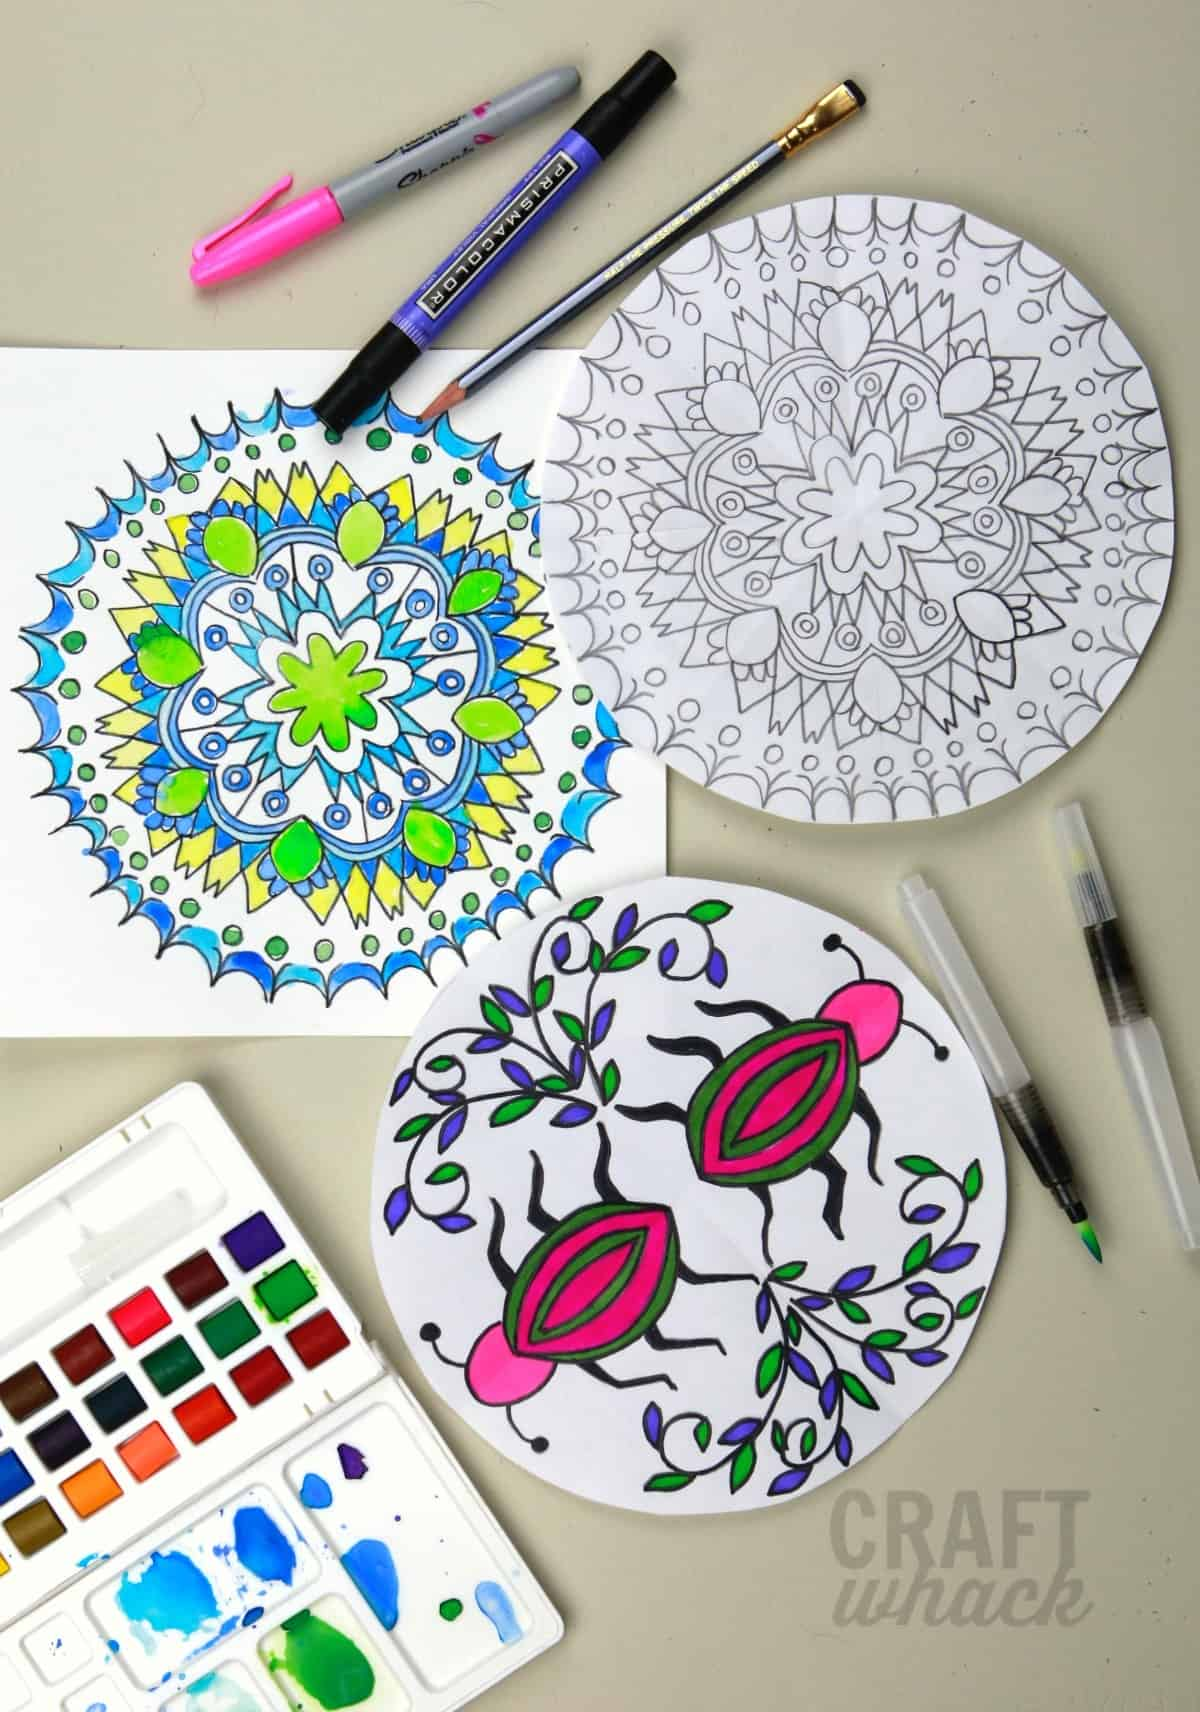 finished drawn mandalas